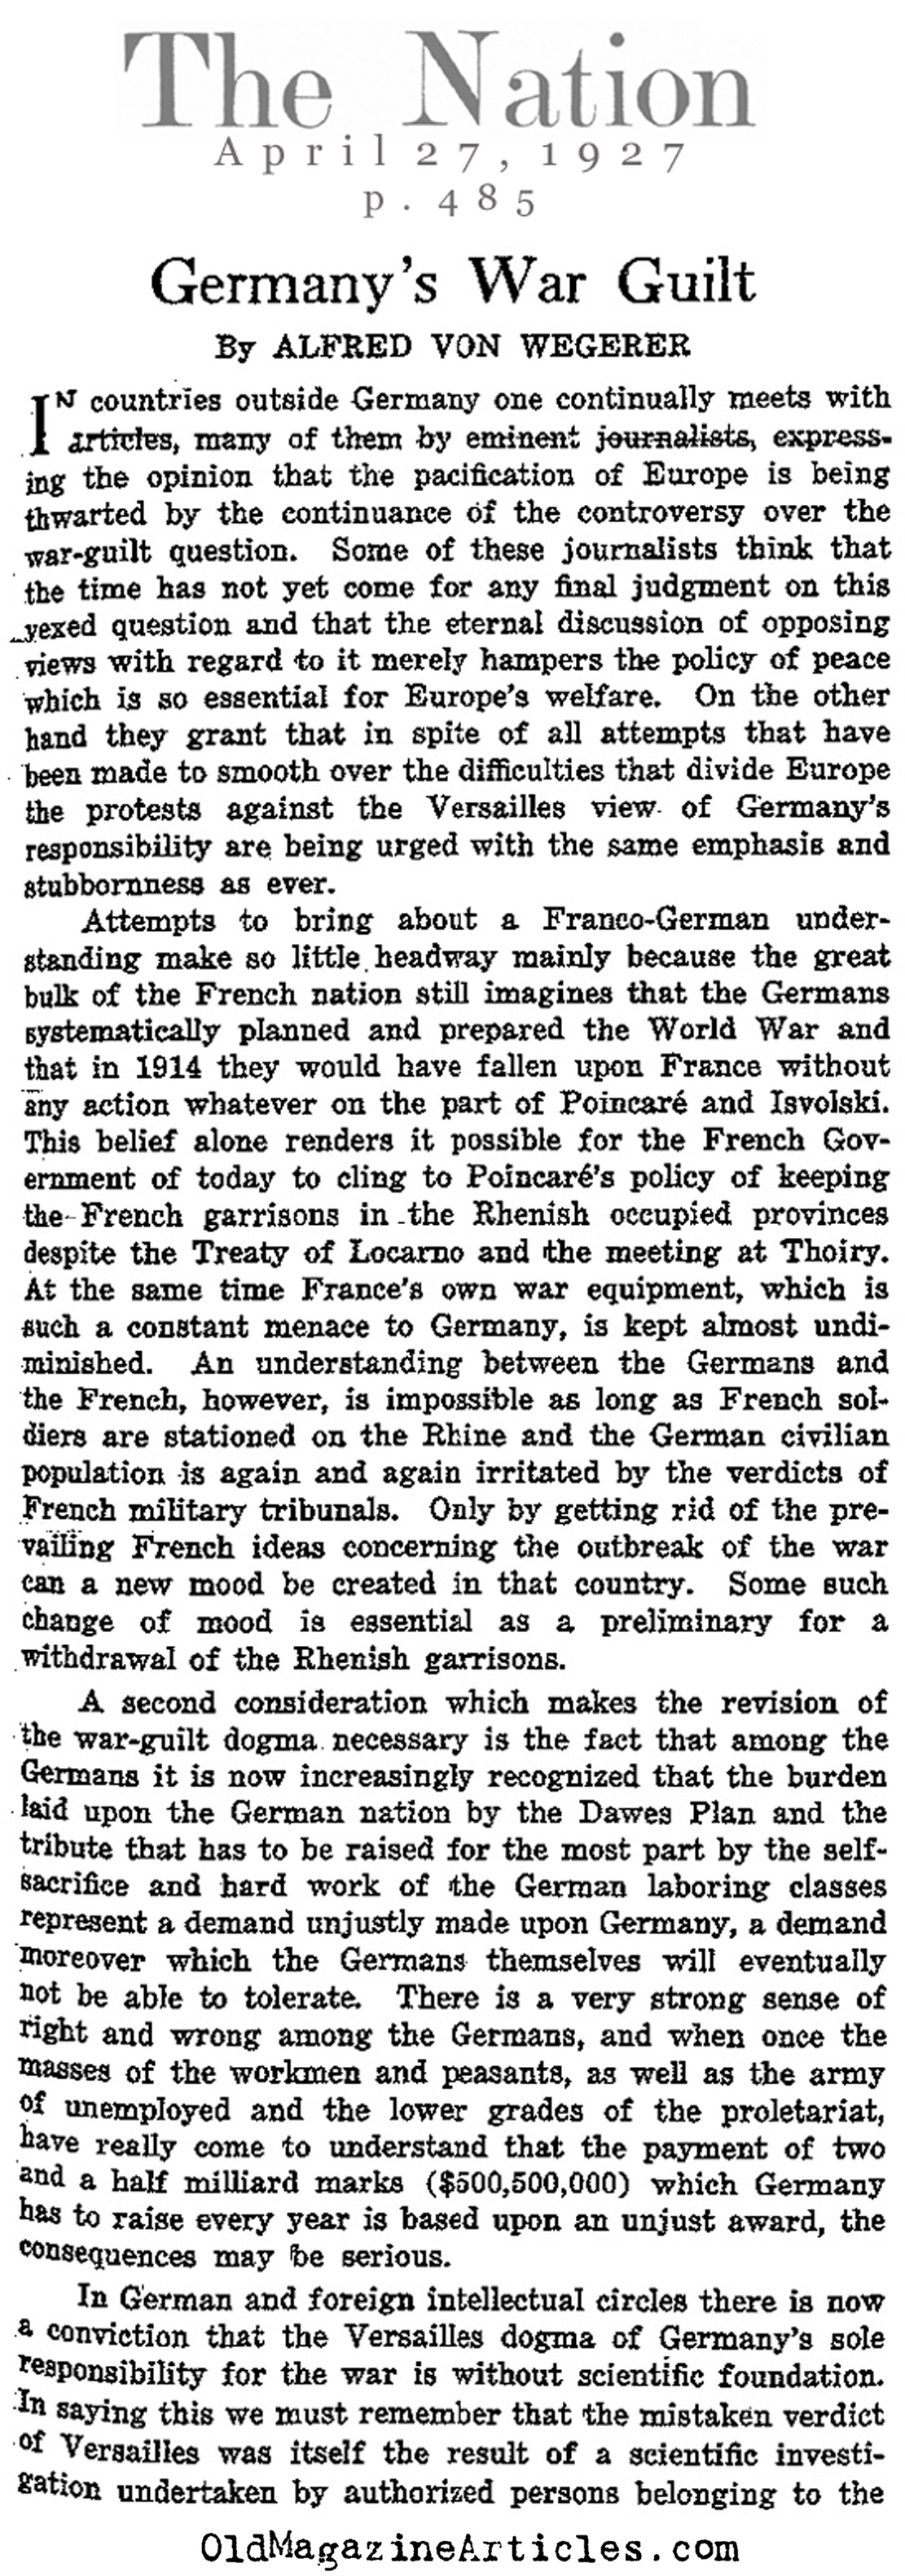 Questioning German War Guilt (The Nation, 1927)